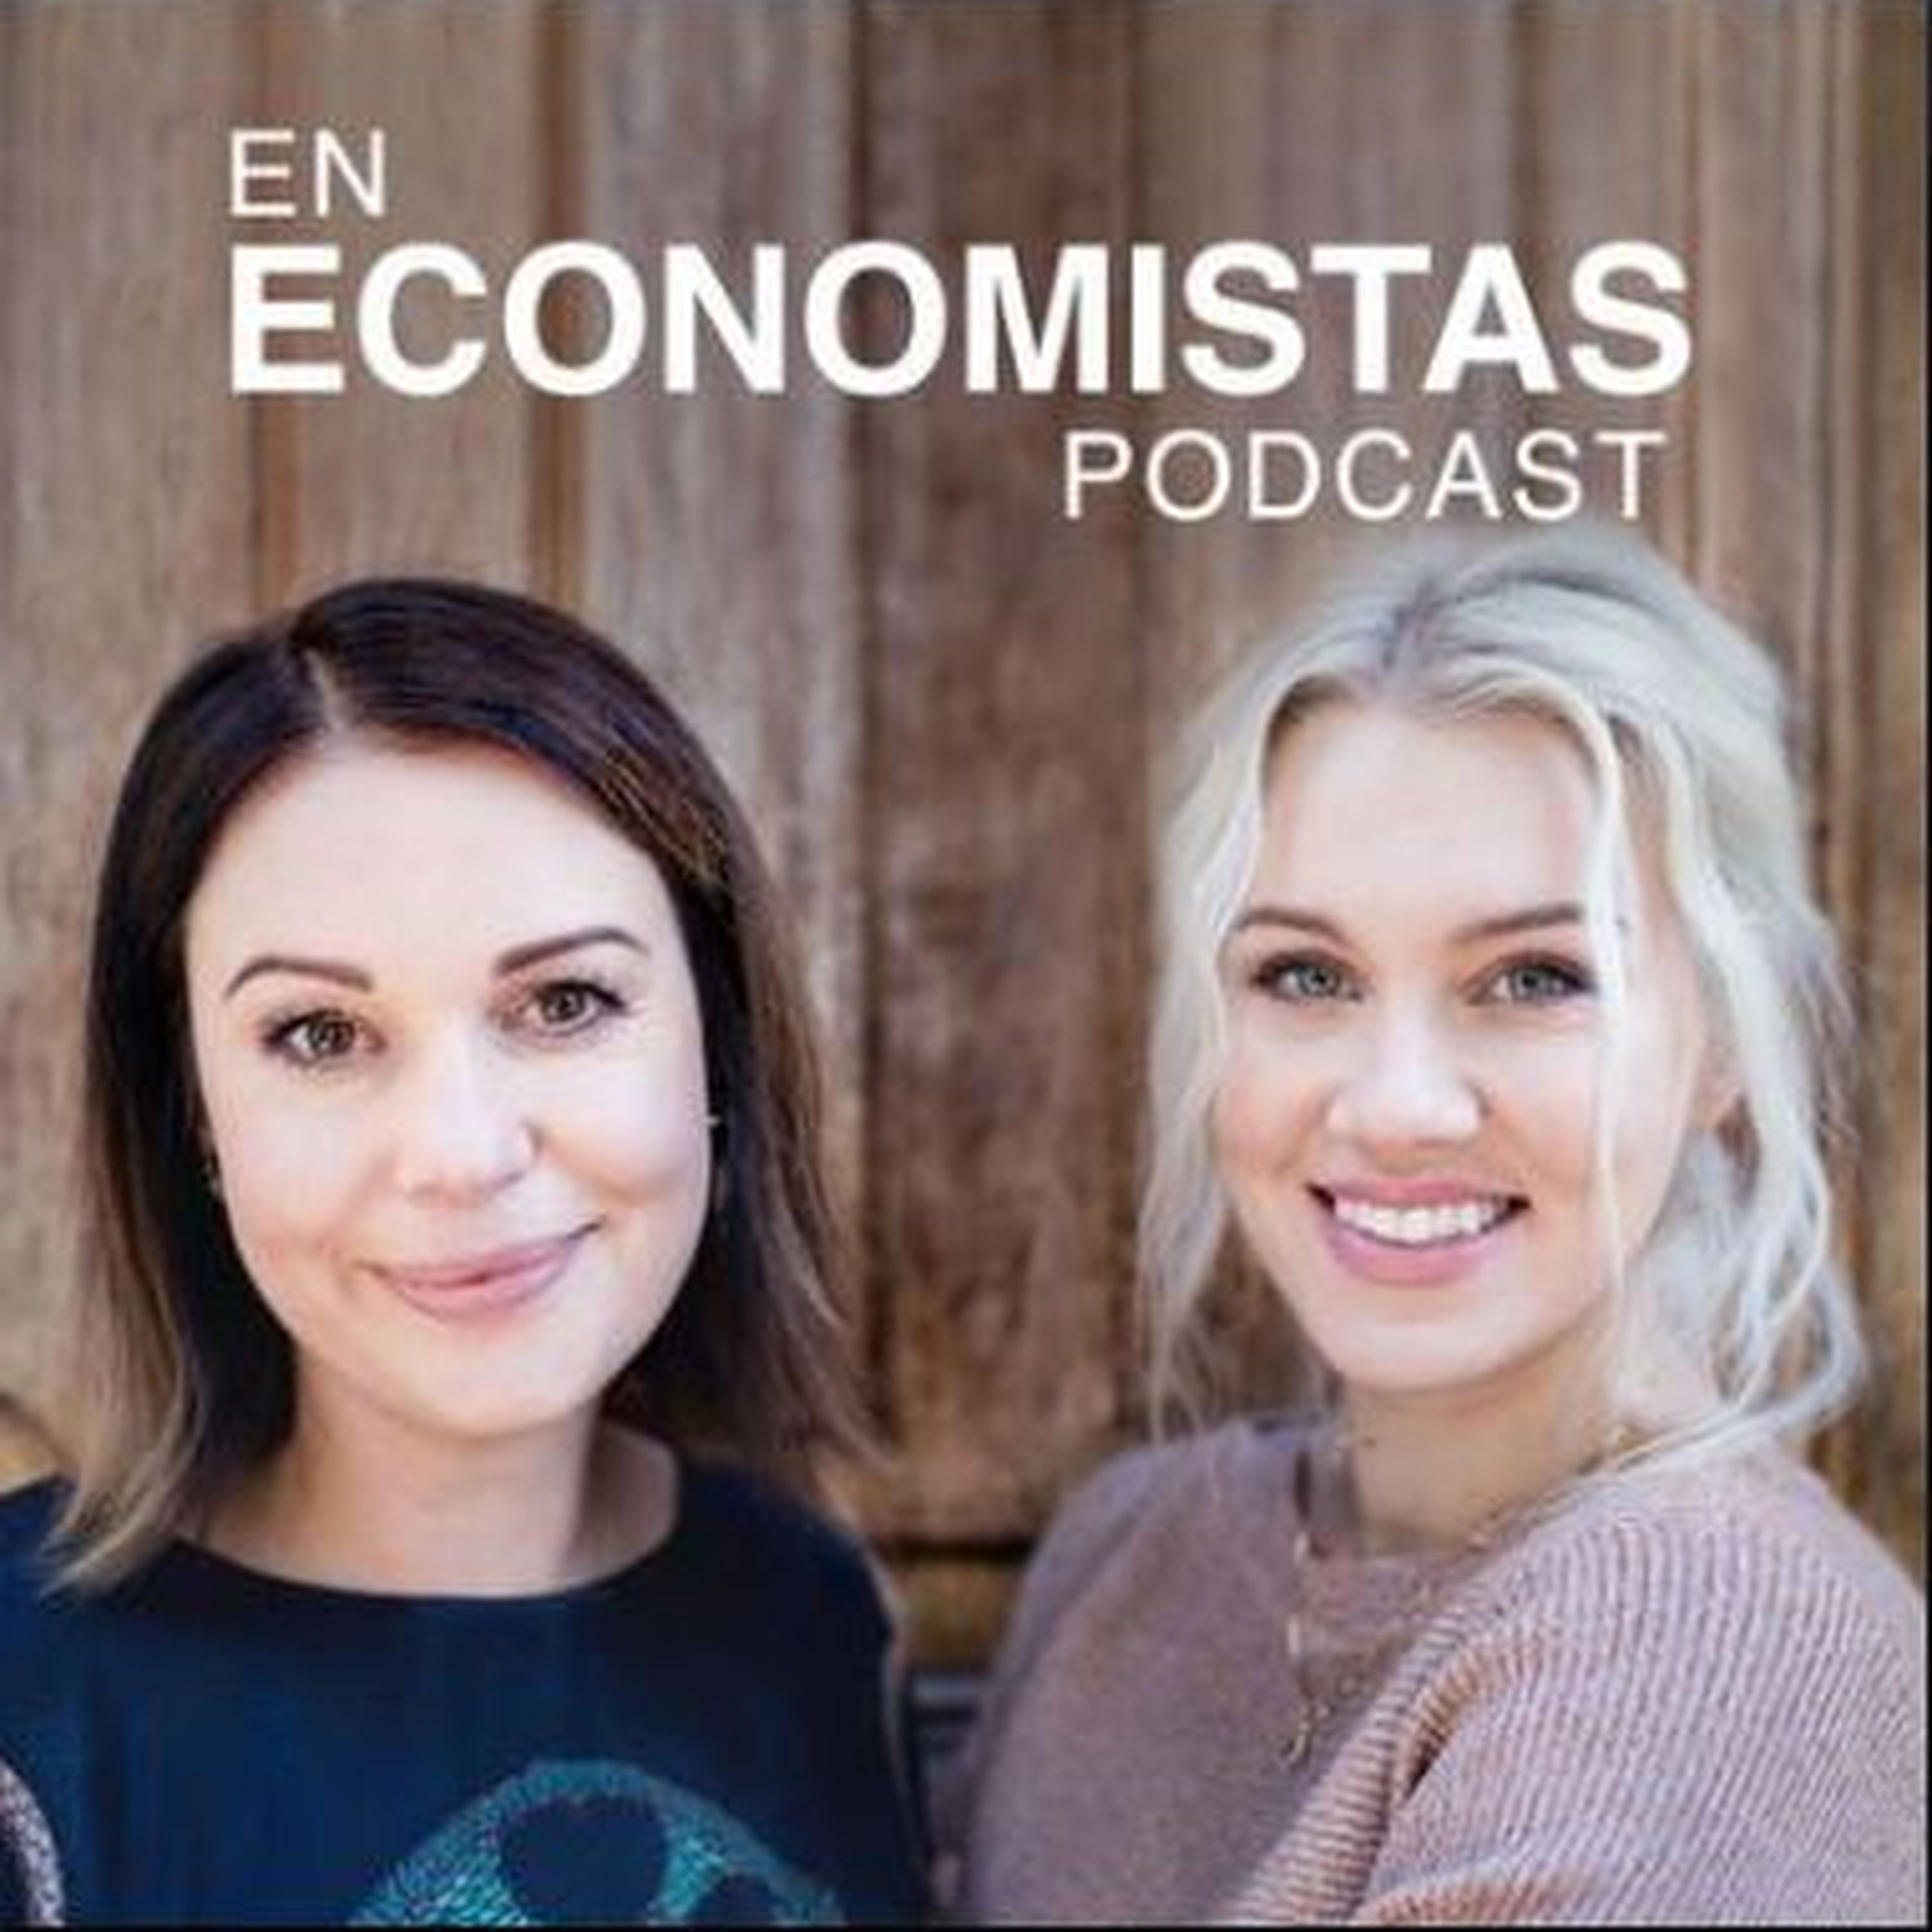 En Economistas Podcast